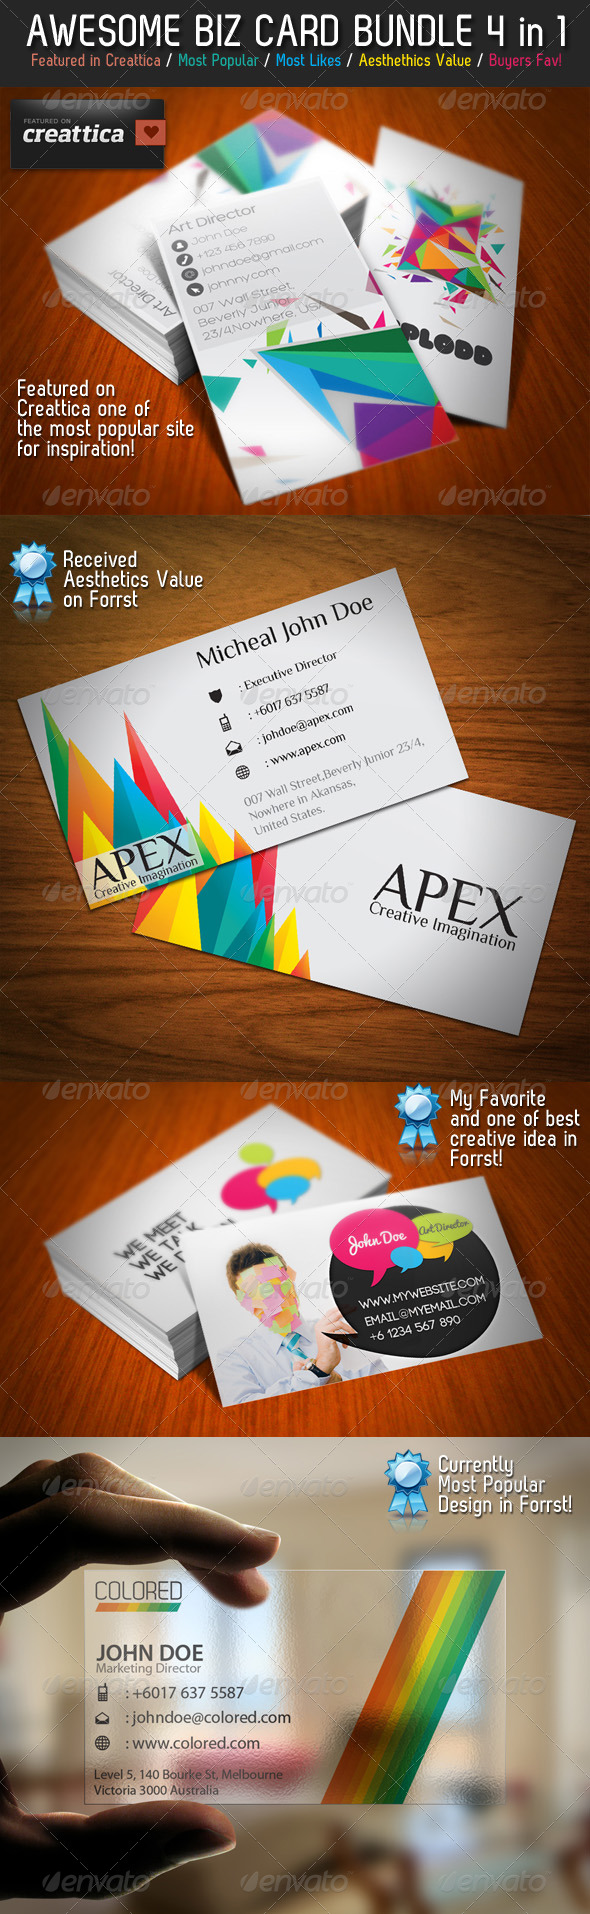 GraphicRiver Colorful Business Card Bundle 4 in 1 240984